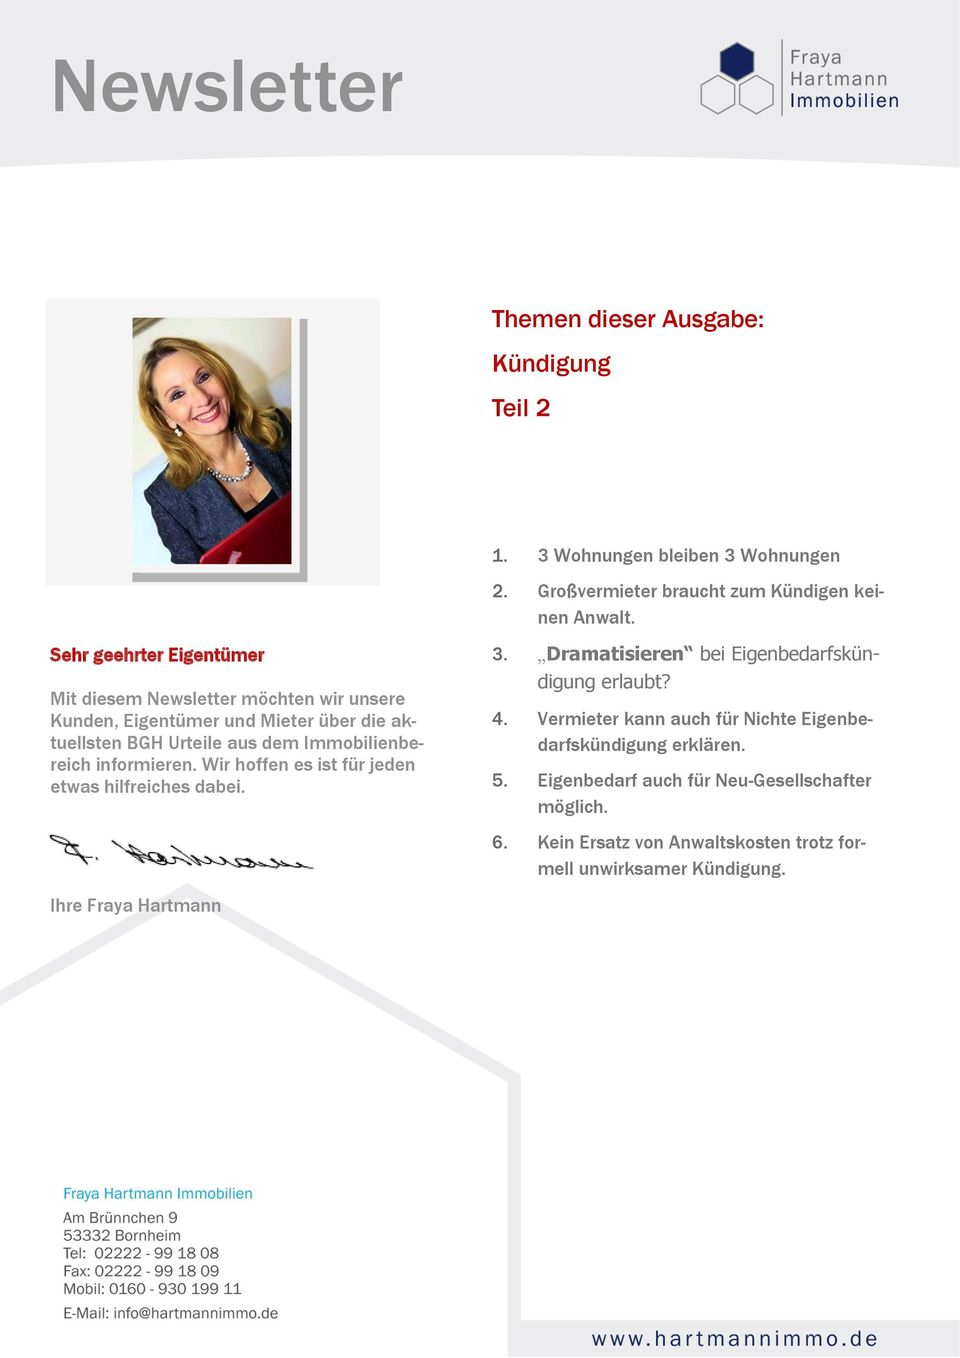 Old Fashioned Immobilien Newsletter Composition - FORTSETZUNG ...